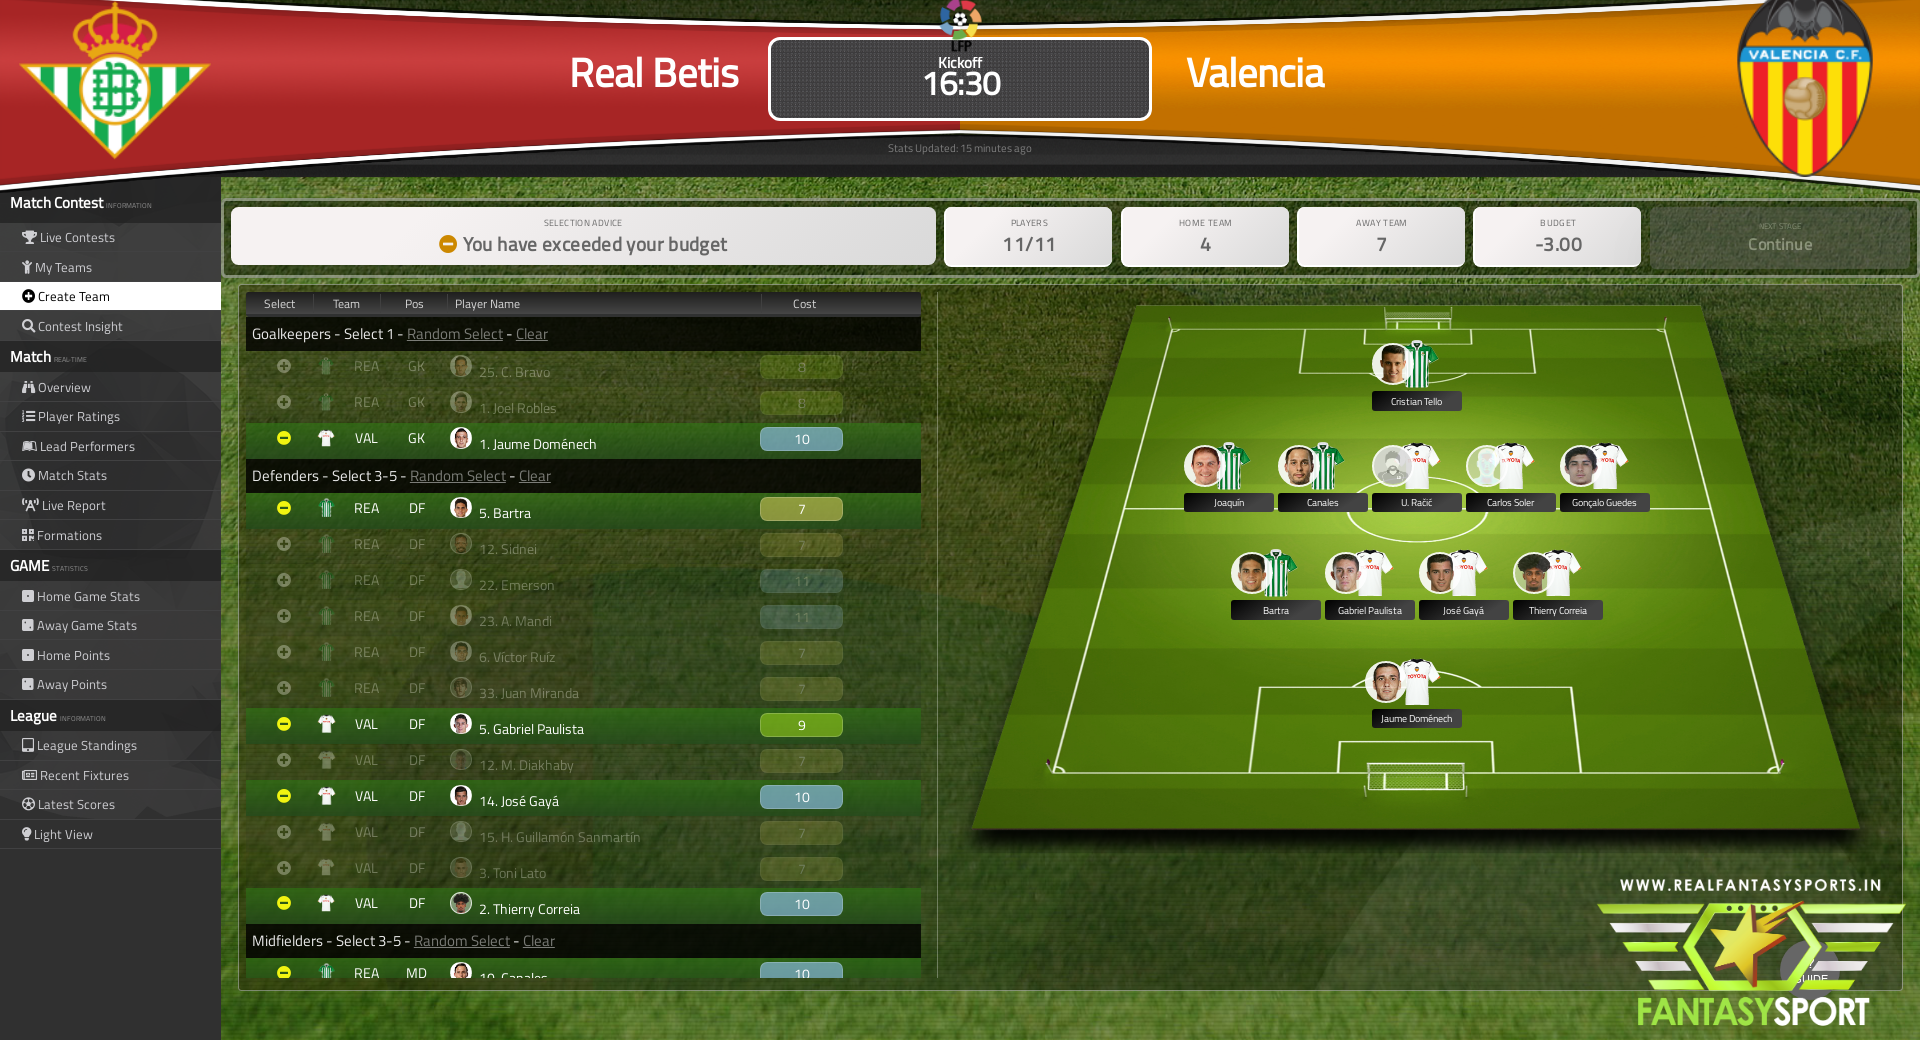 Real Betis Vs Valencia Fantasy Football Team